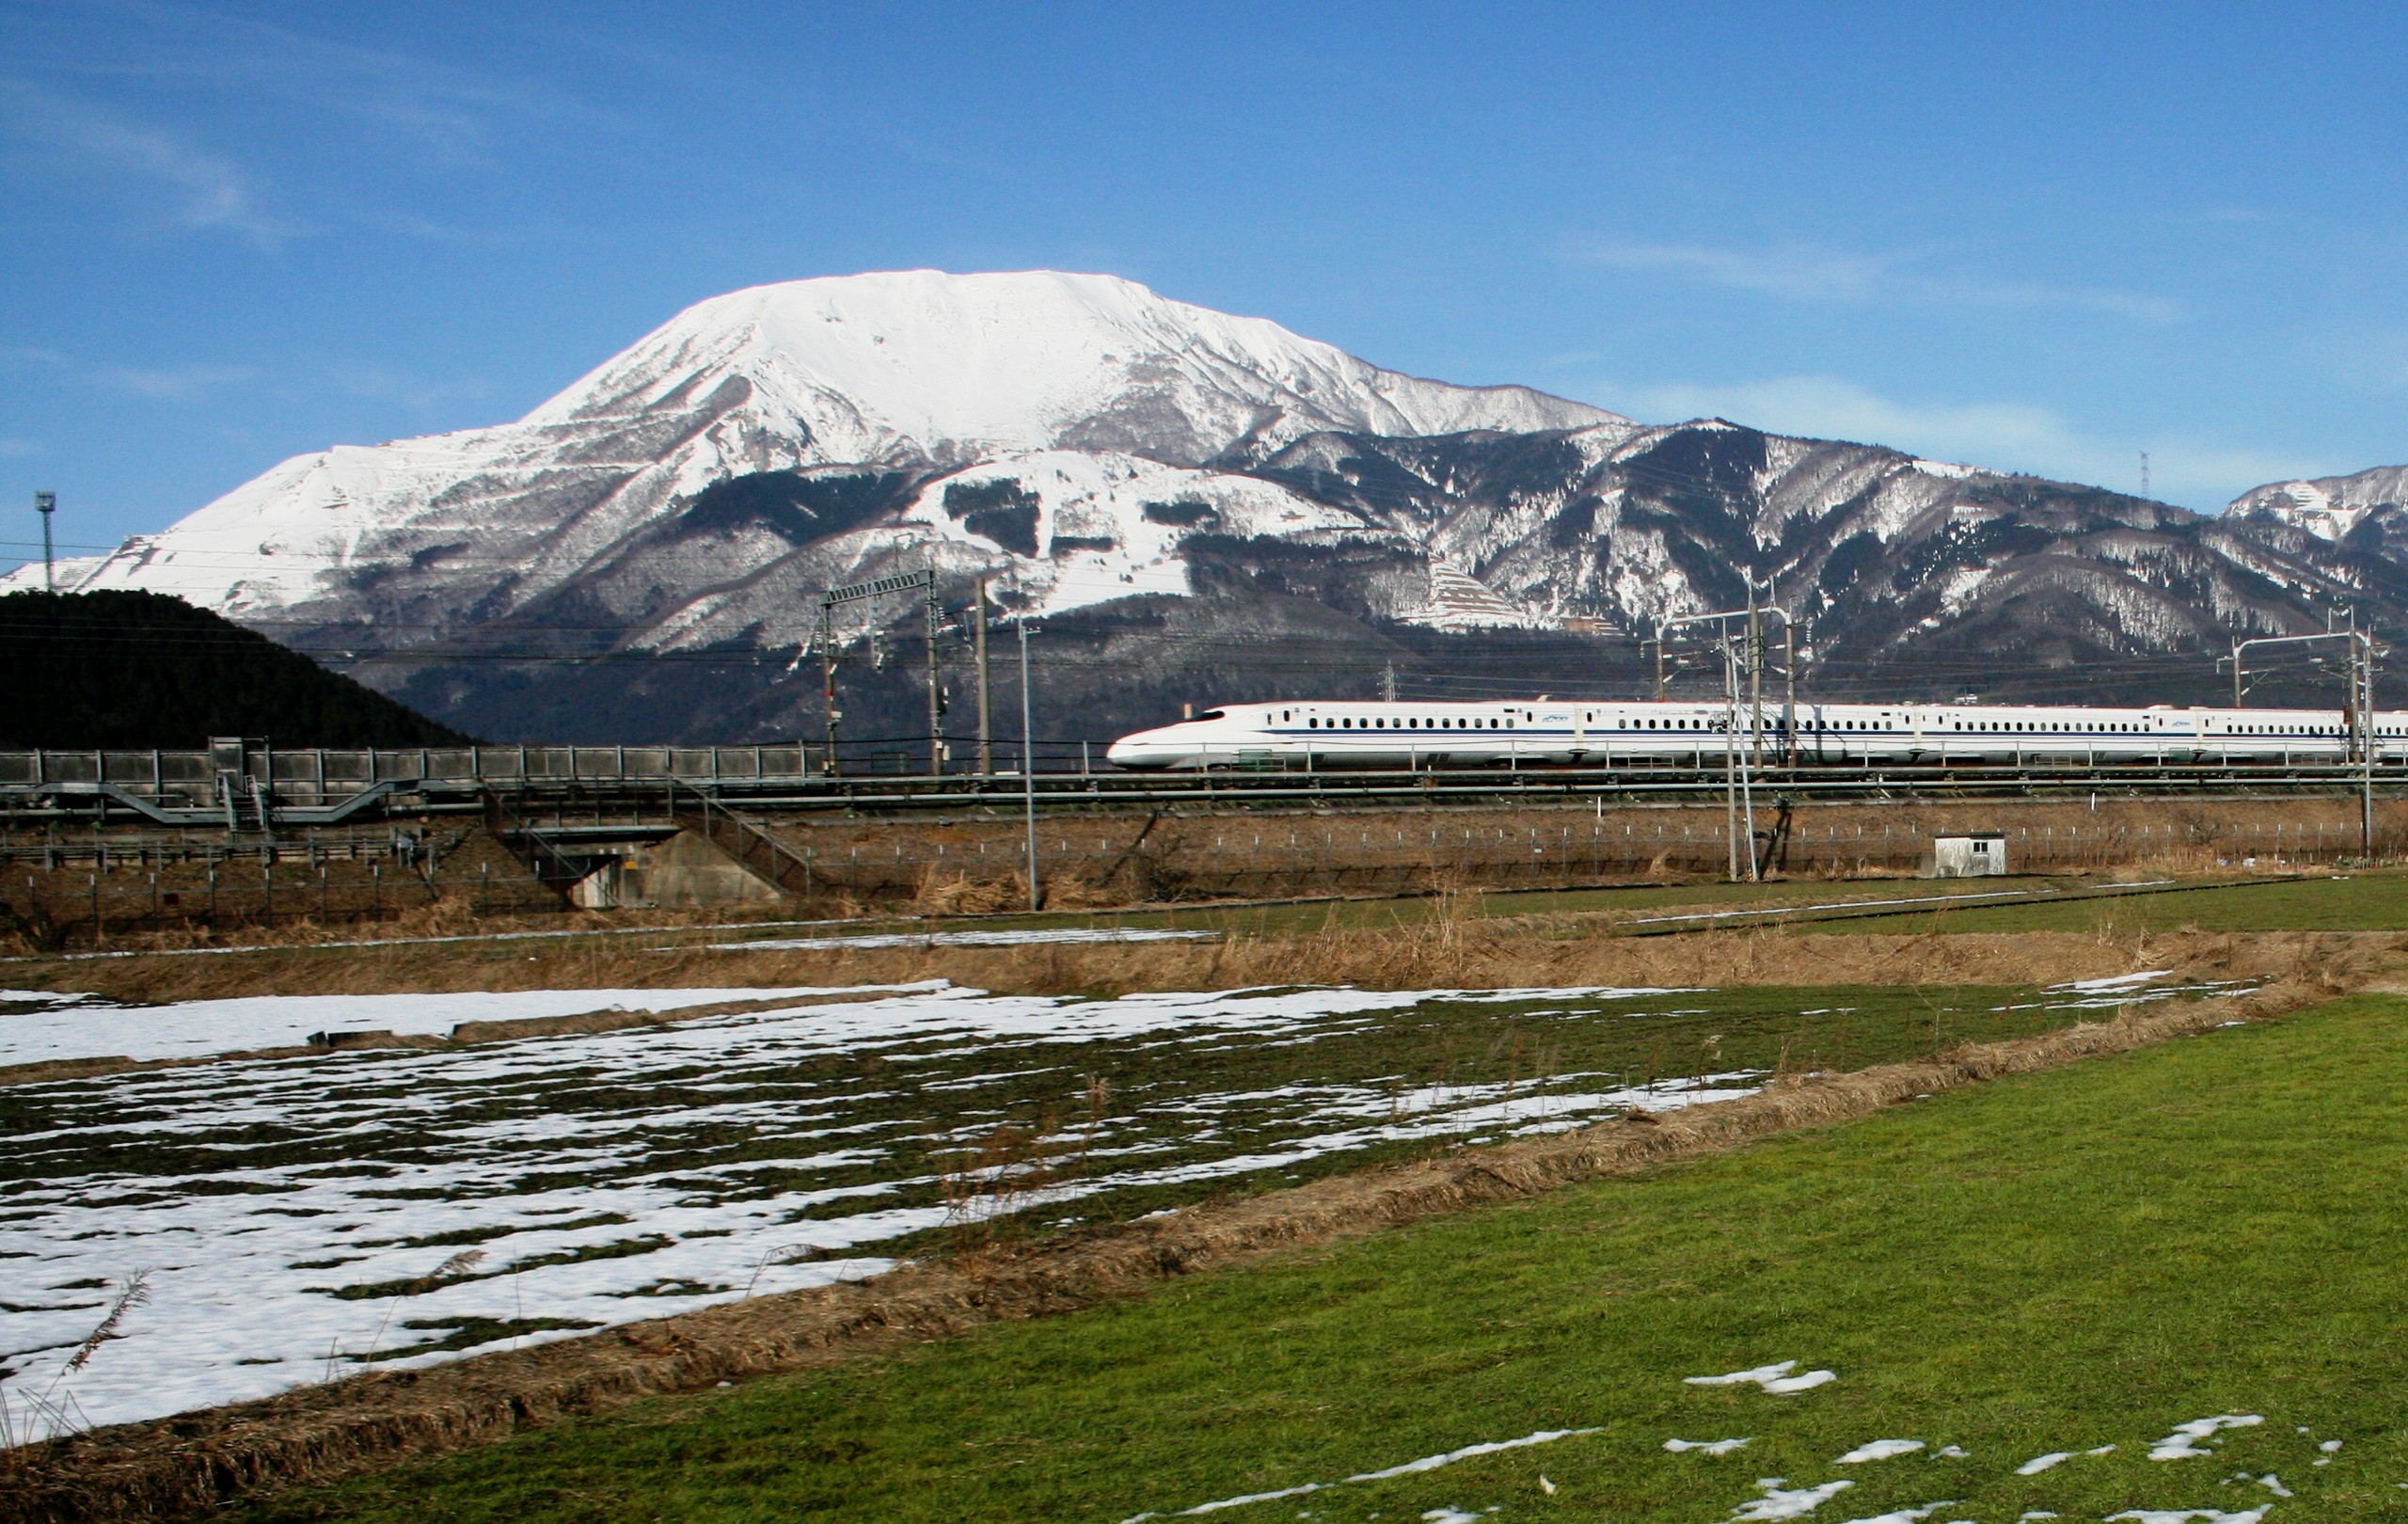 Mount Ibuki and N700 Series Shinkansen